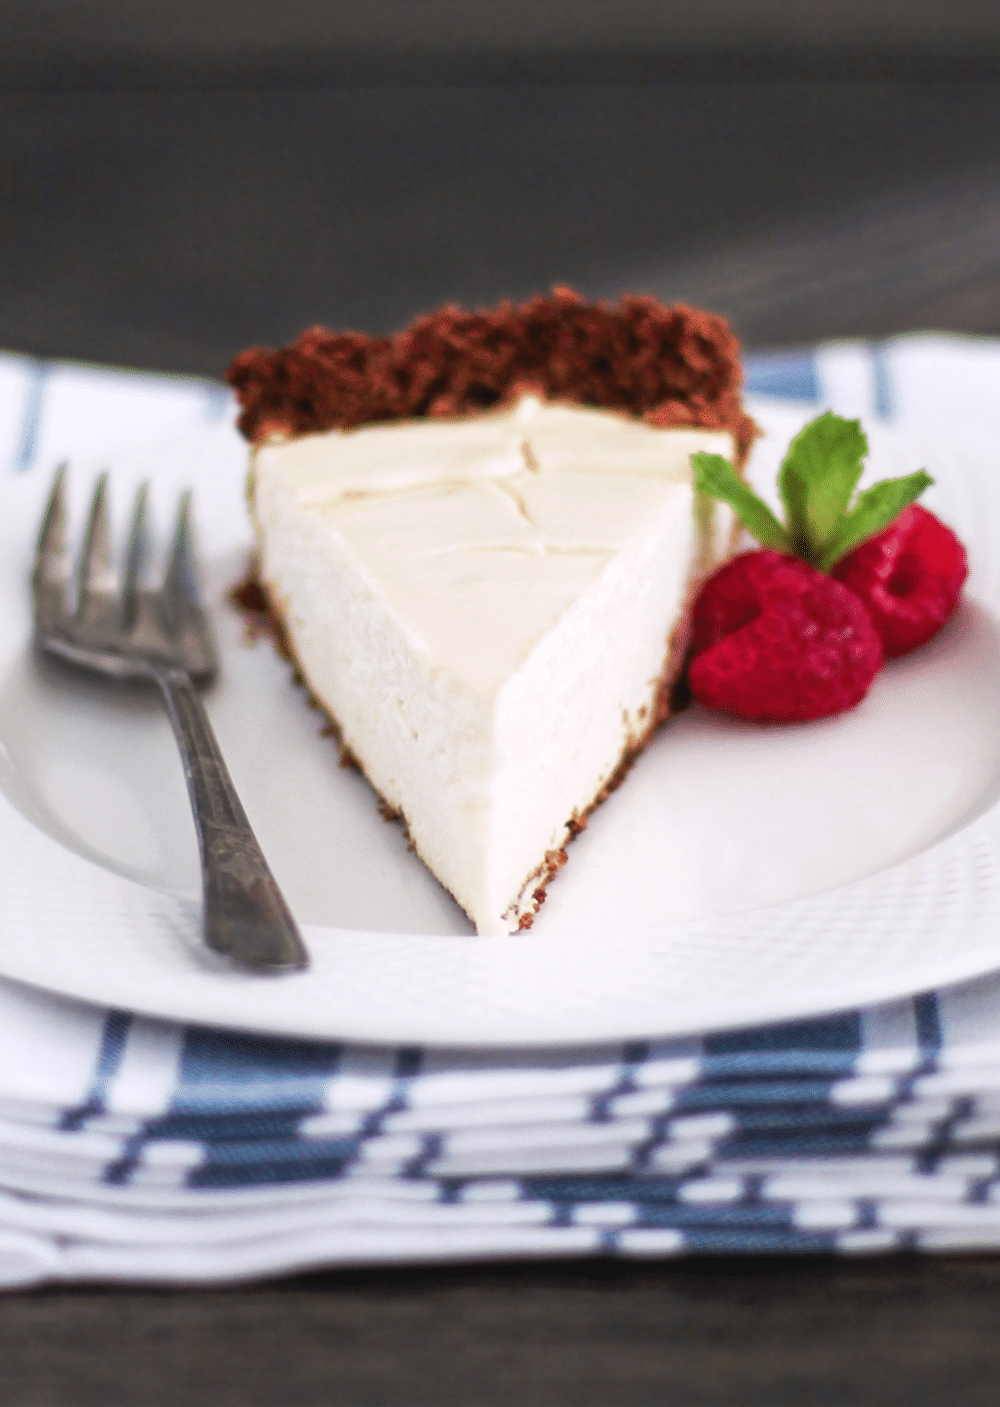 Healthy Cheesecake Recipe - Desserts With Benefits